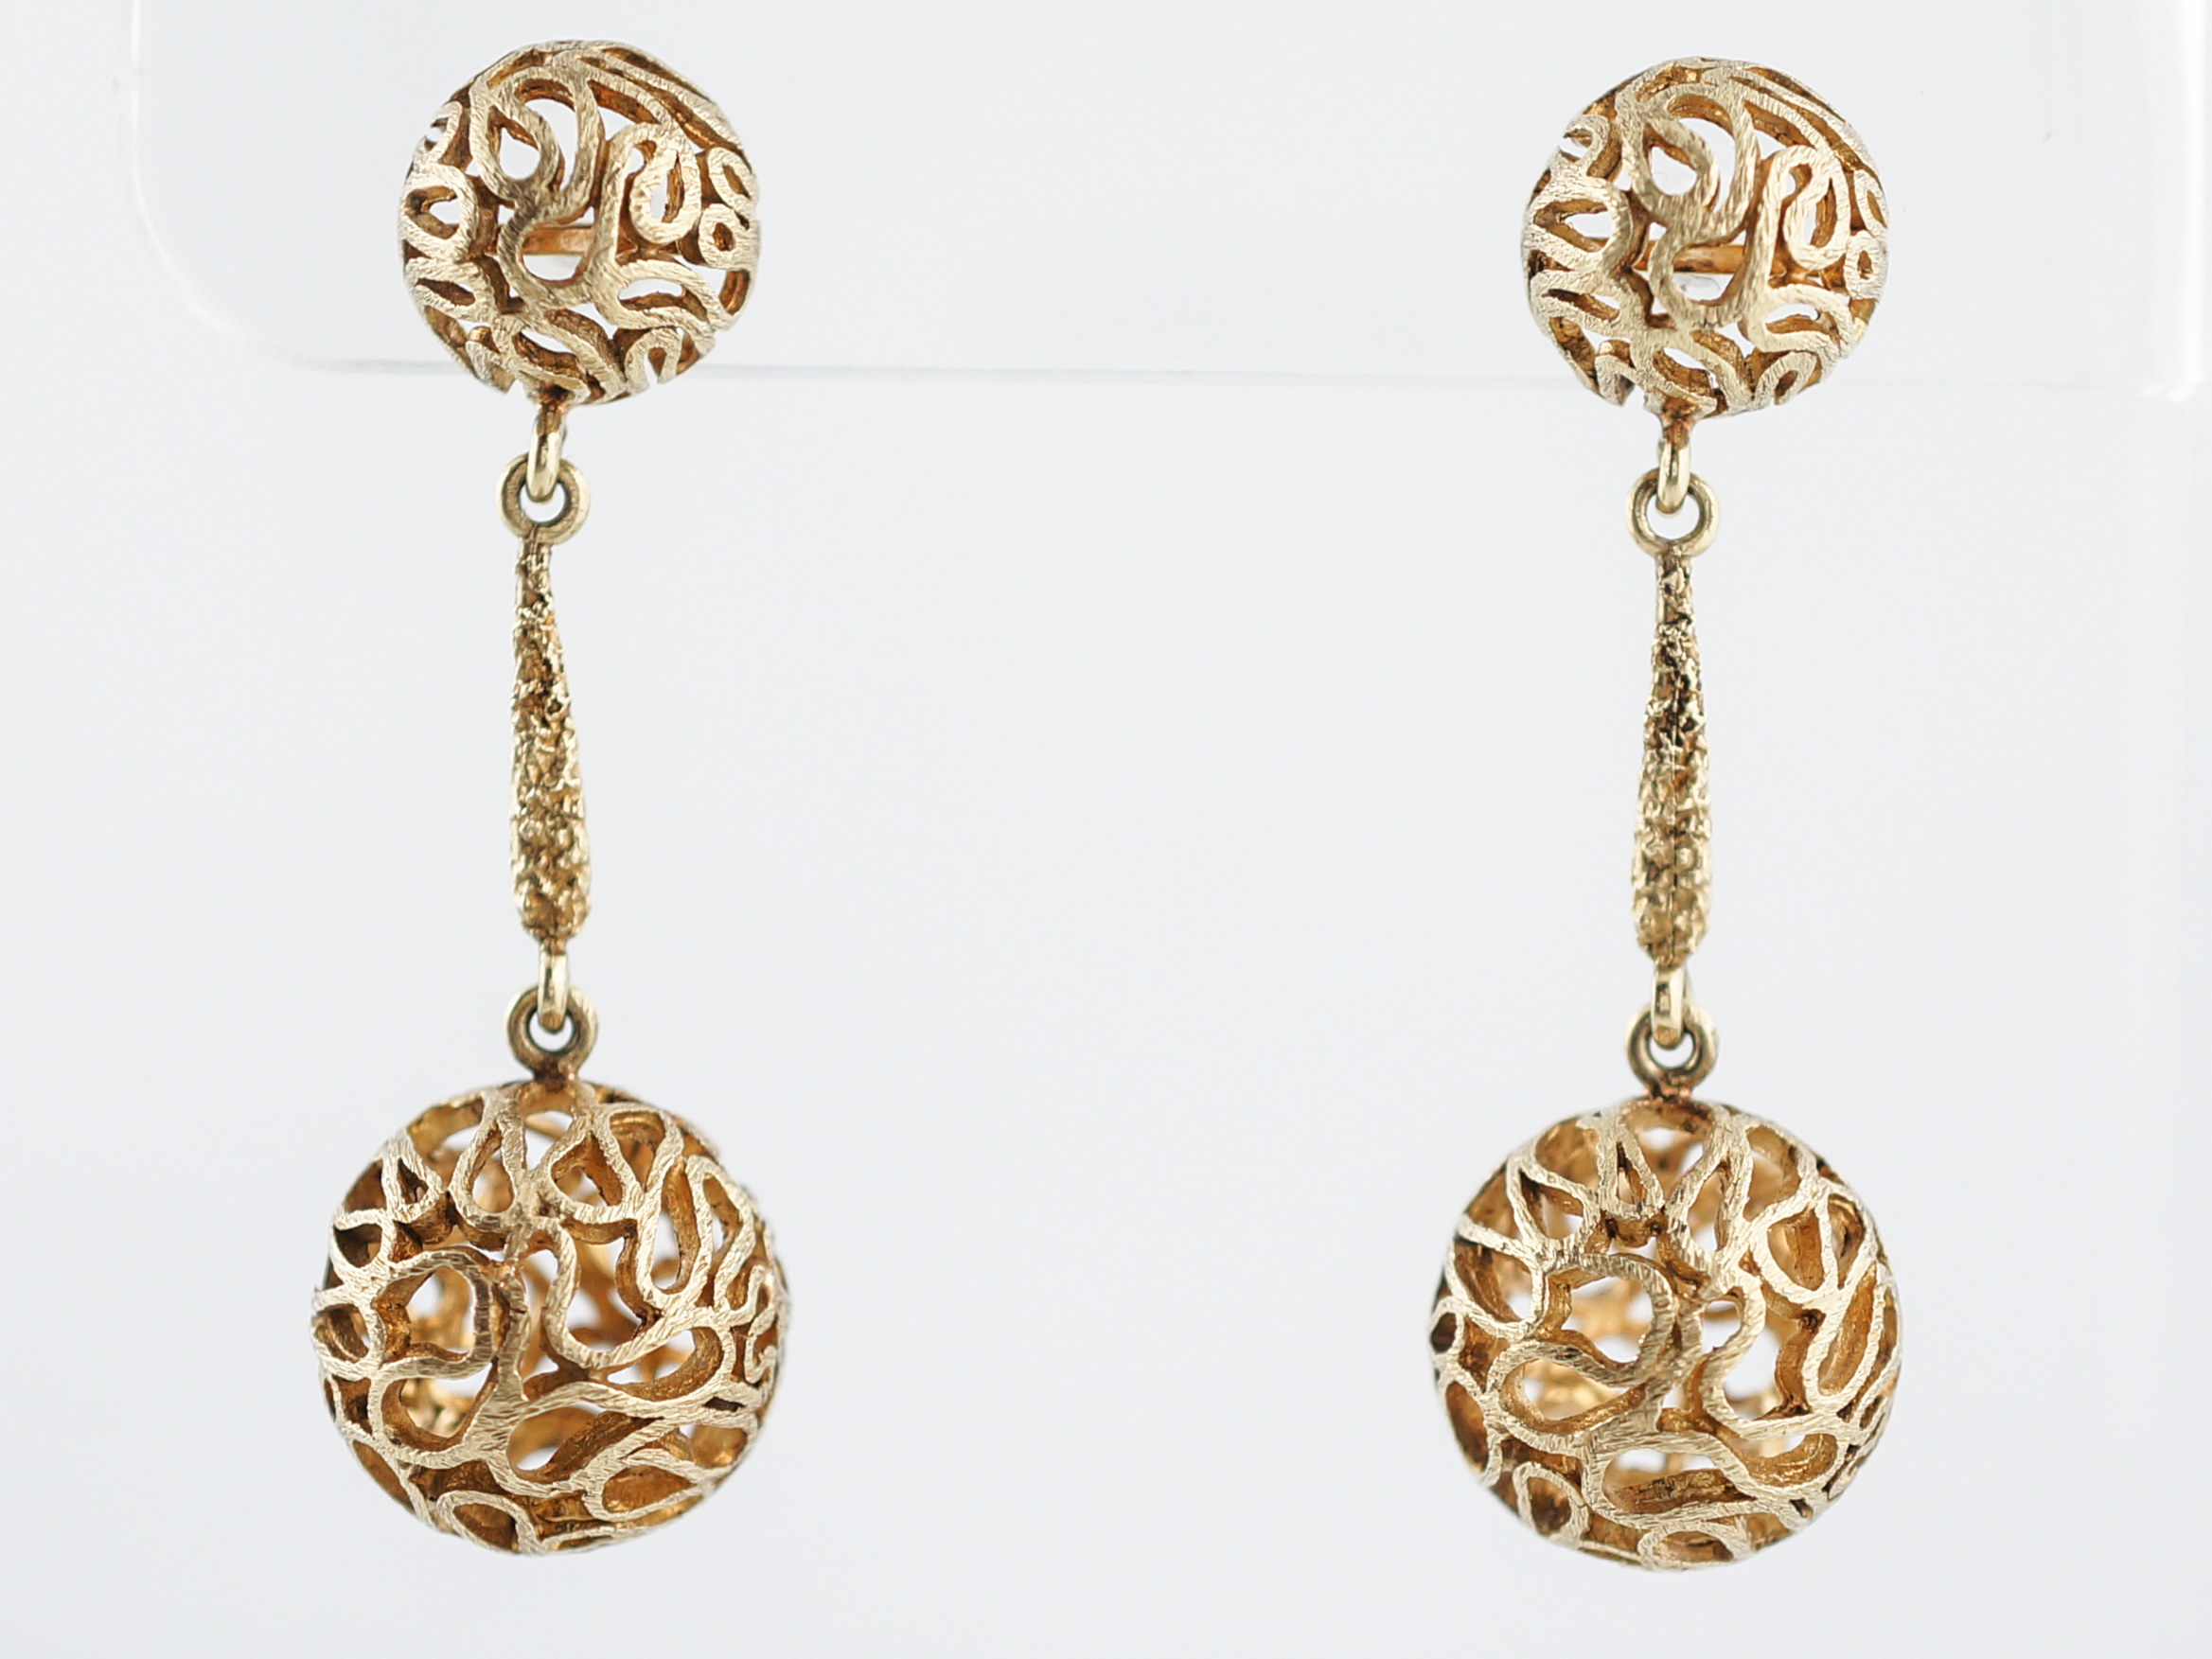 buy com shop to diamond antique store gold swasam jewelry jhumka indian earrings